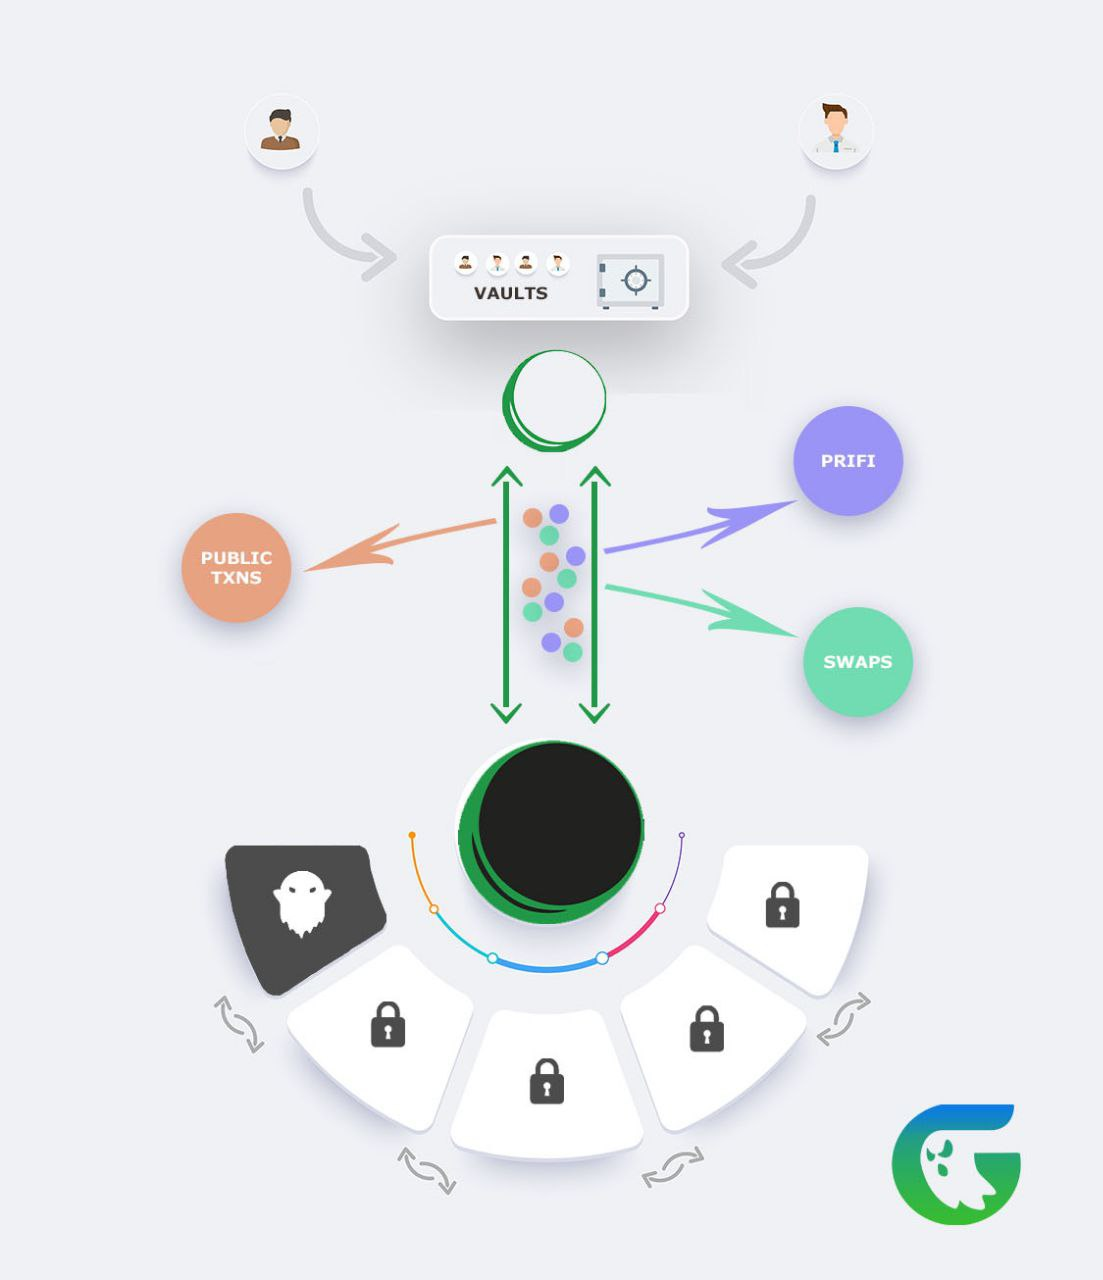 Here's a high level infographic for mainnet alpha